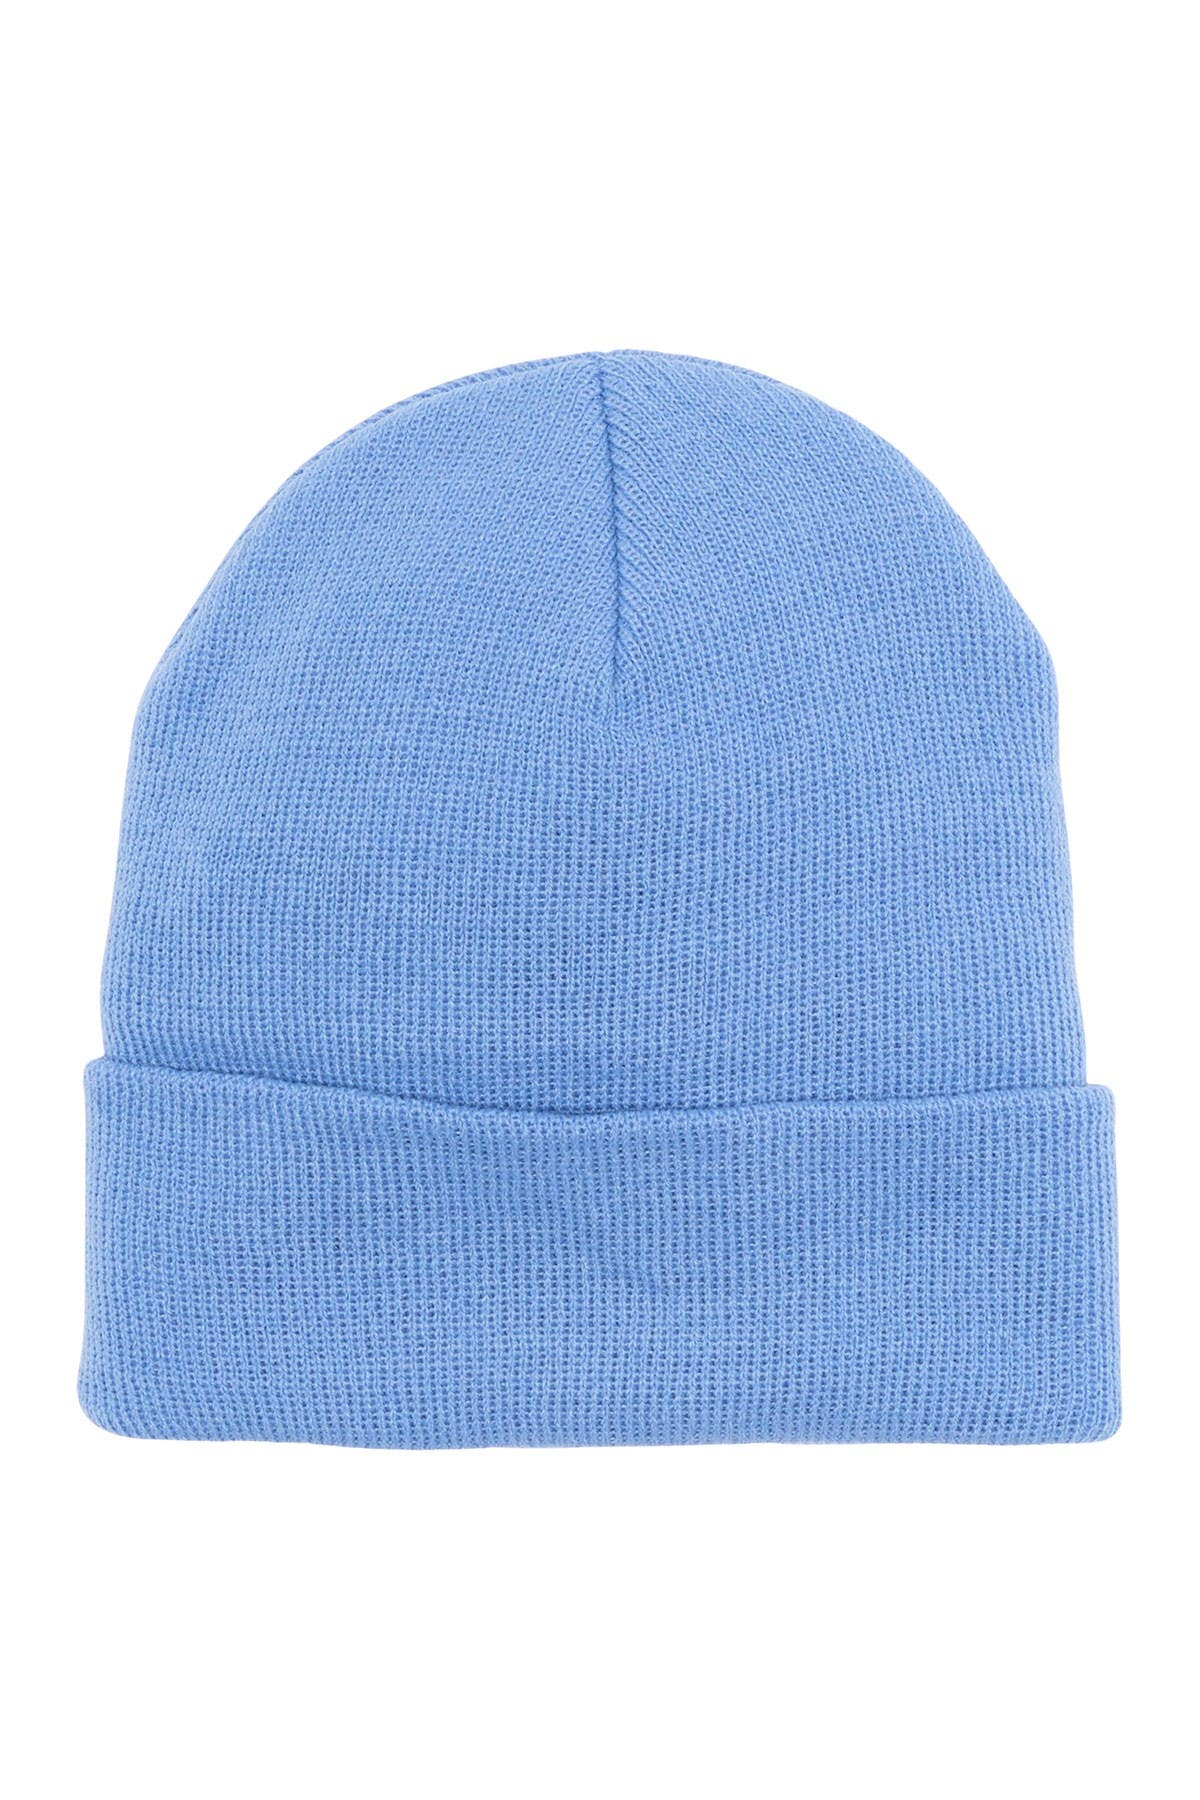 Image of American Needle Cuffed Solid Knit Beanie